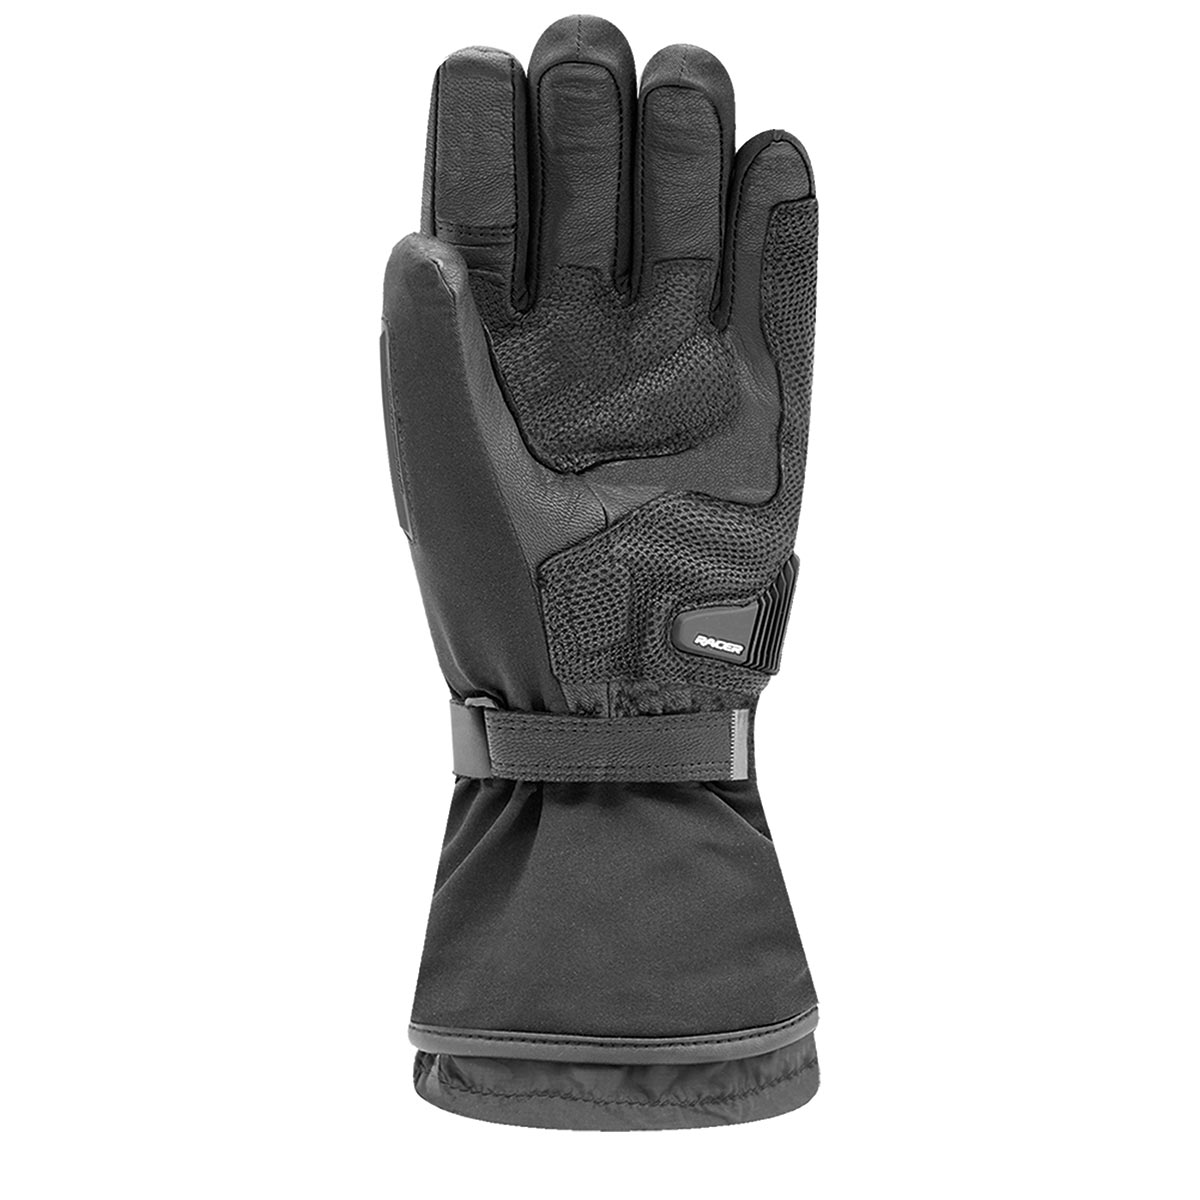 Racer Heat 4 F Ladies Gloves